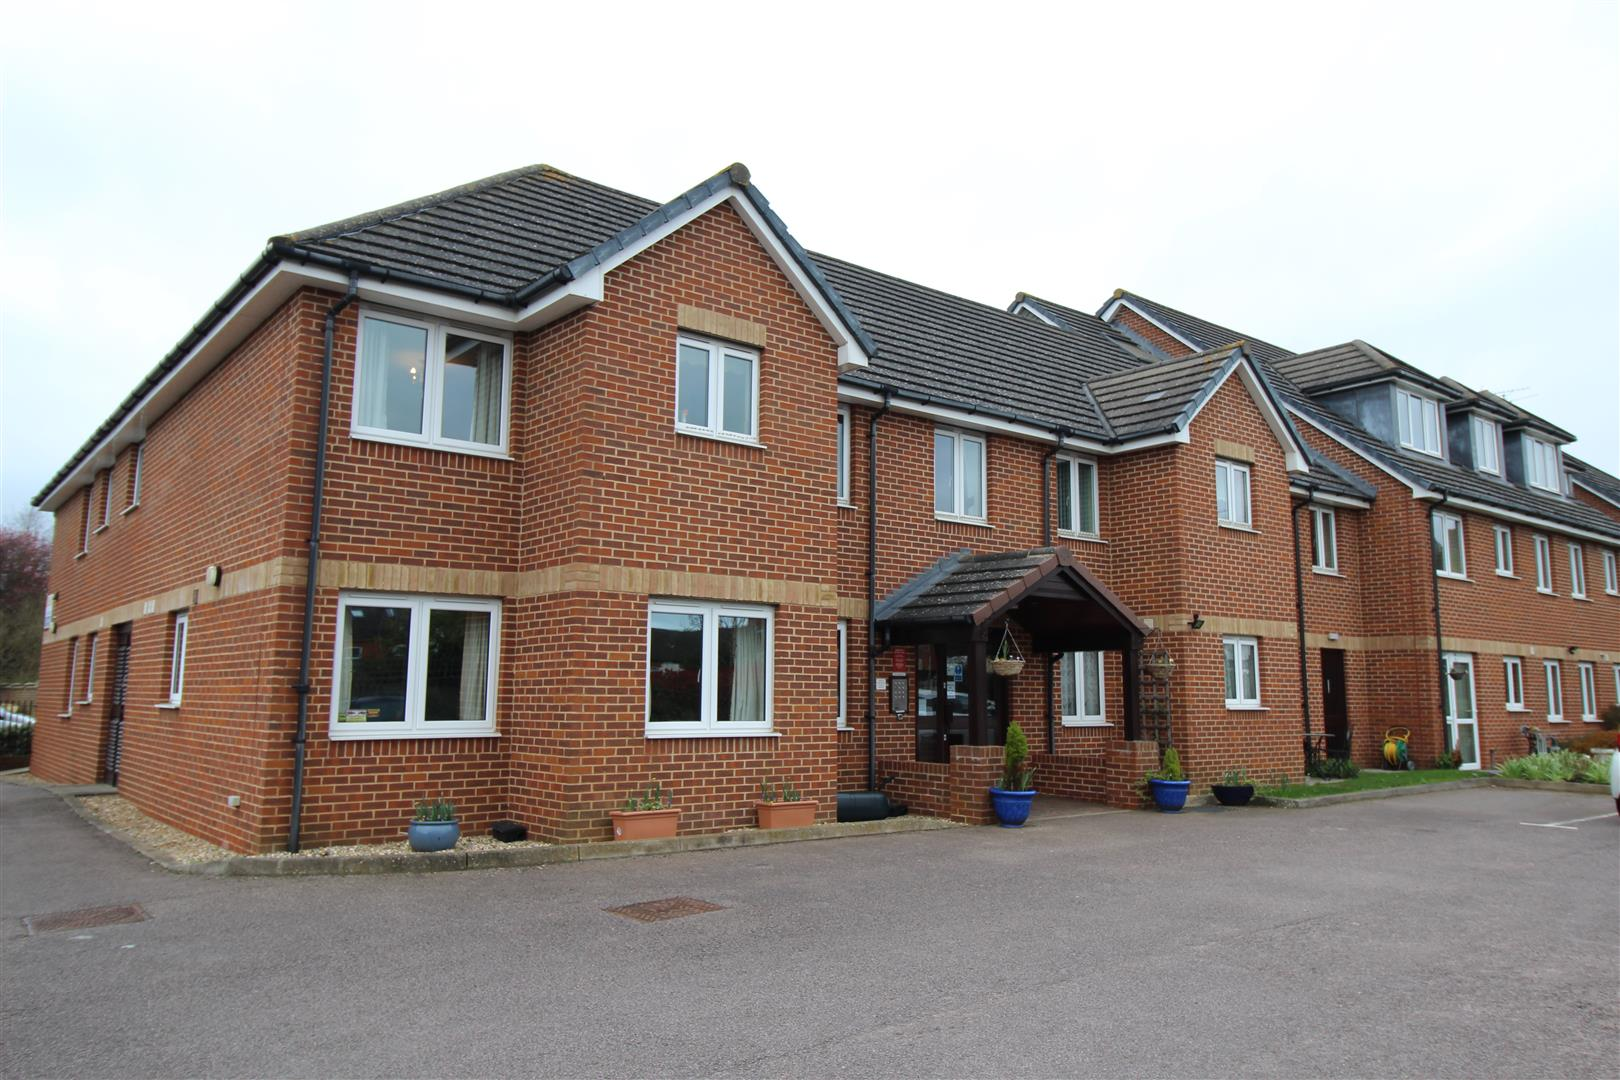 GREAT LOCATION WITHIN WALKING DISTANCE OF THE TOWN <br/><br/>WONDERFULLY RUN RETIREMENT APARTMENT that is only a short walk away from the Bletchley Town Center.<br/><br/>The property comprises entrance hall. lounge/diner, kitchen, bedroom with a built in